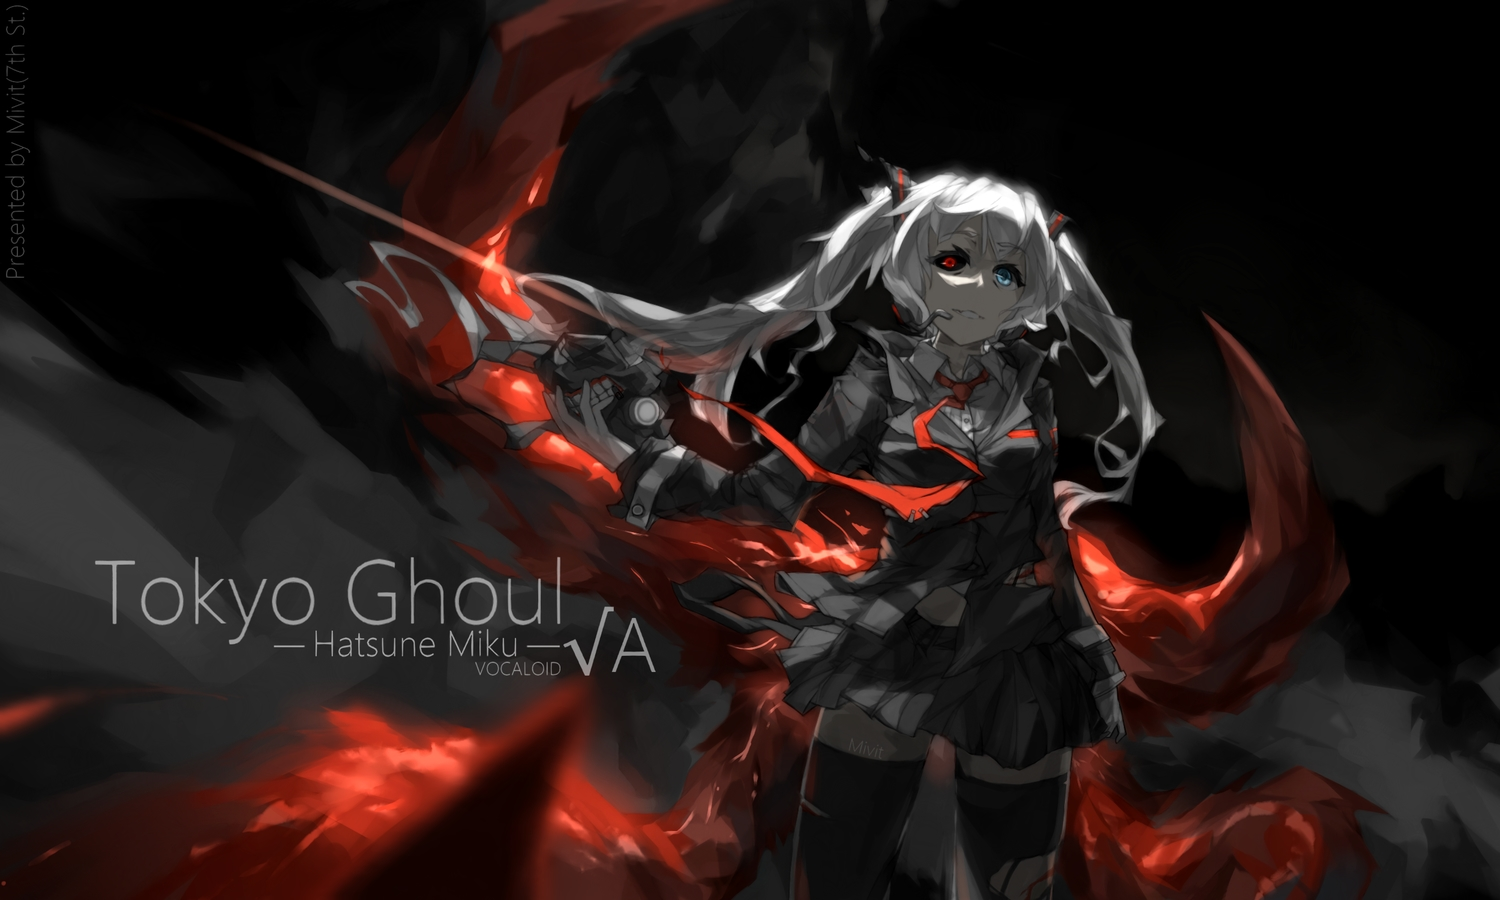 bicolored_eyes crossover hatsune_miku long_hair mivit skirt thighhighs tie tokyo_ghoul torn_clothes twintails vocaloid watermark white_hair zettai_ryouiki